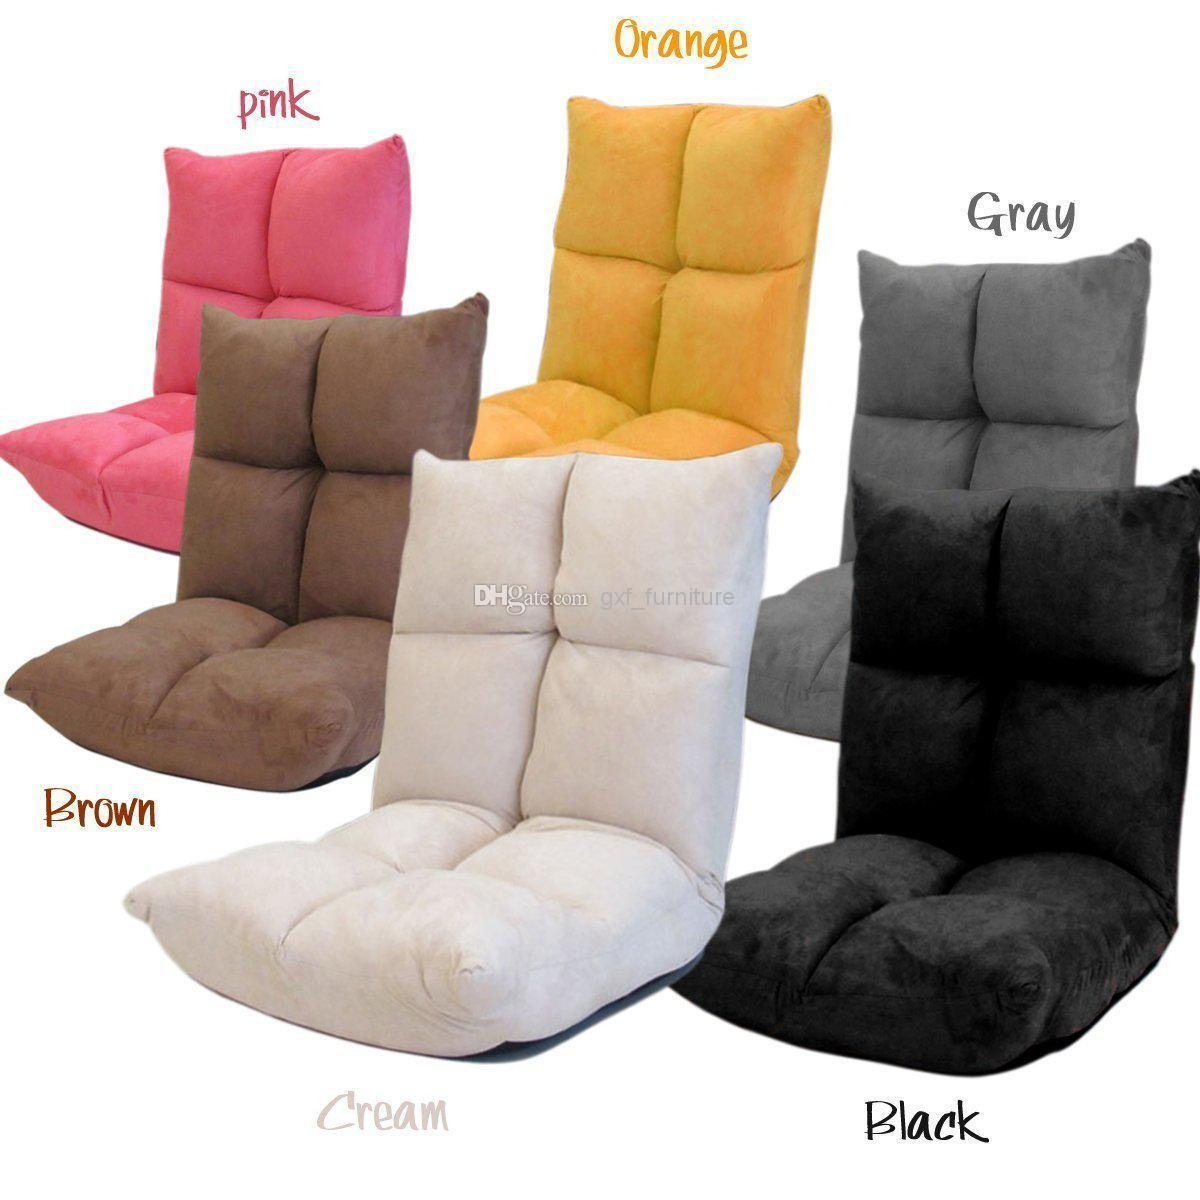 2017 Folding Chairs ,sofa Set, Leather Sofa, Lounge Sofa Chairs with Lazy Sofa Chairs